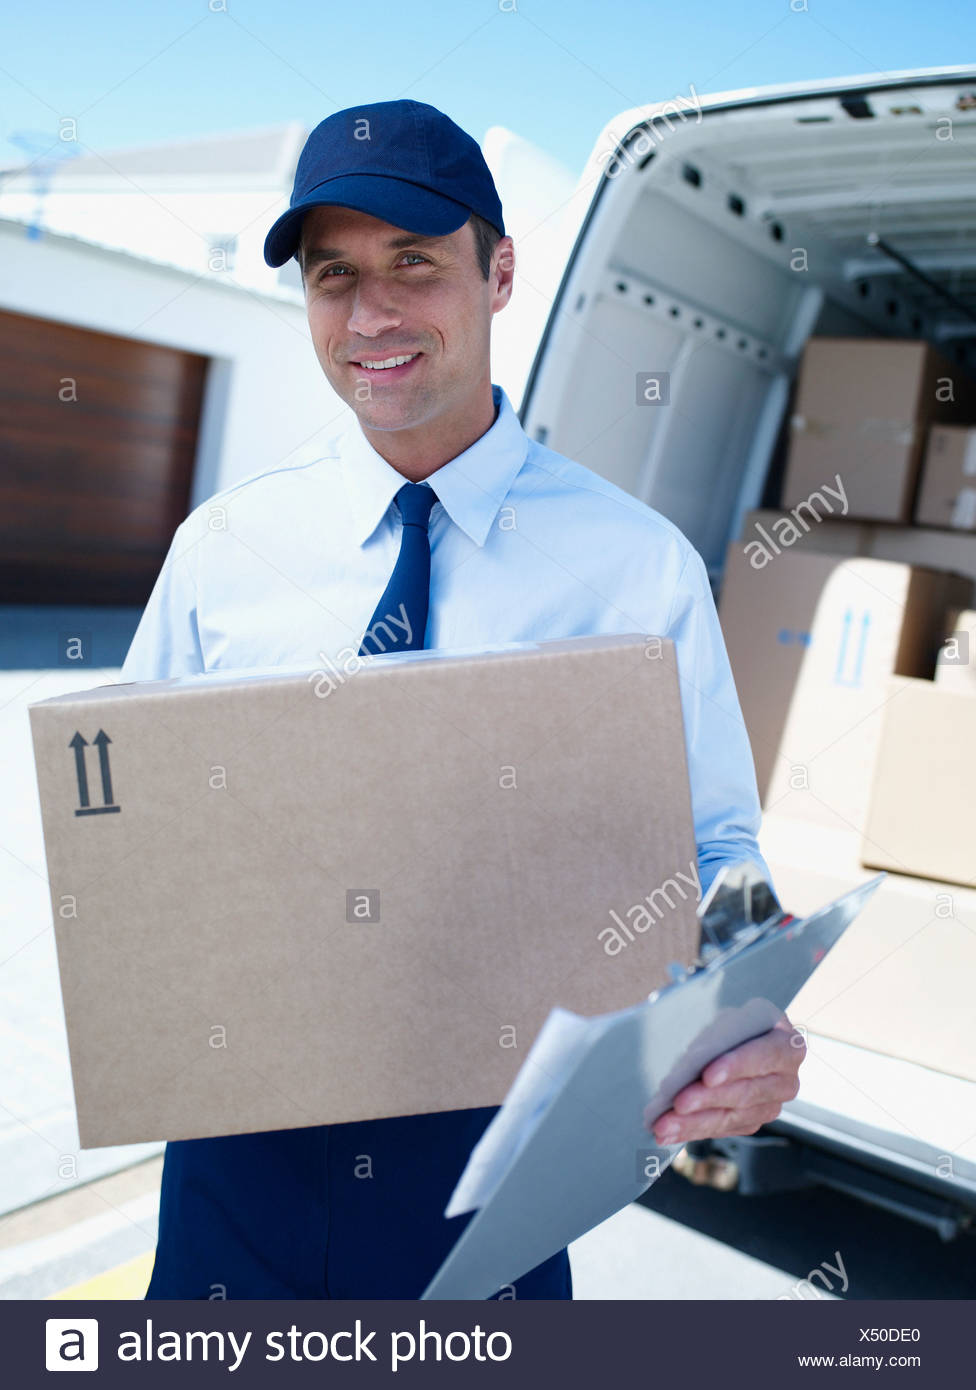 Male delivery person in cap with van and boxes - Stock Image